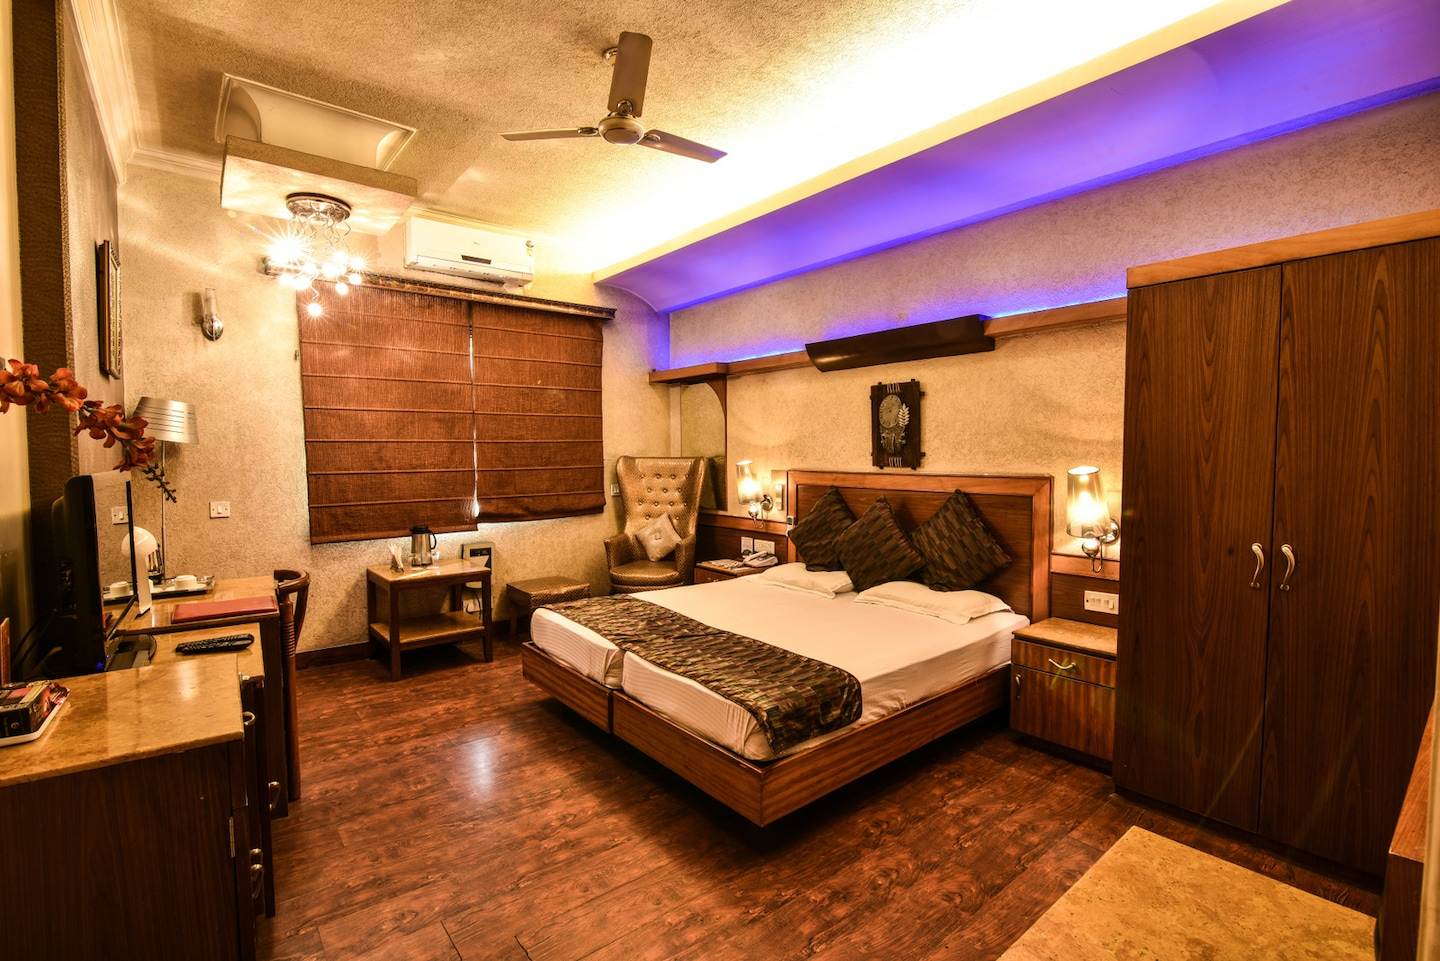 OYO Rooms 402 Chitaranjan Park Room-1